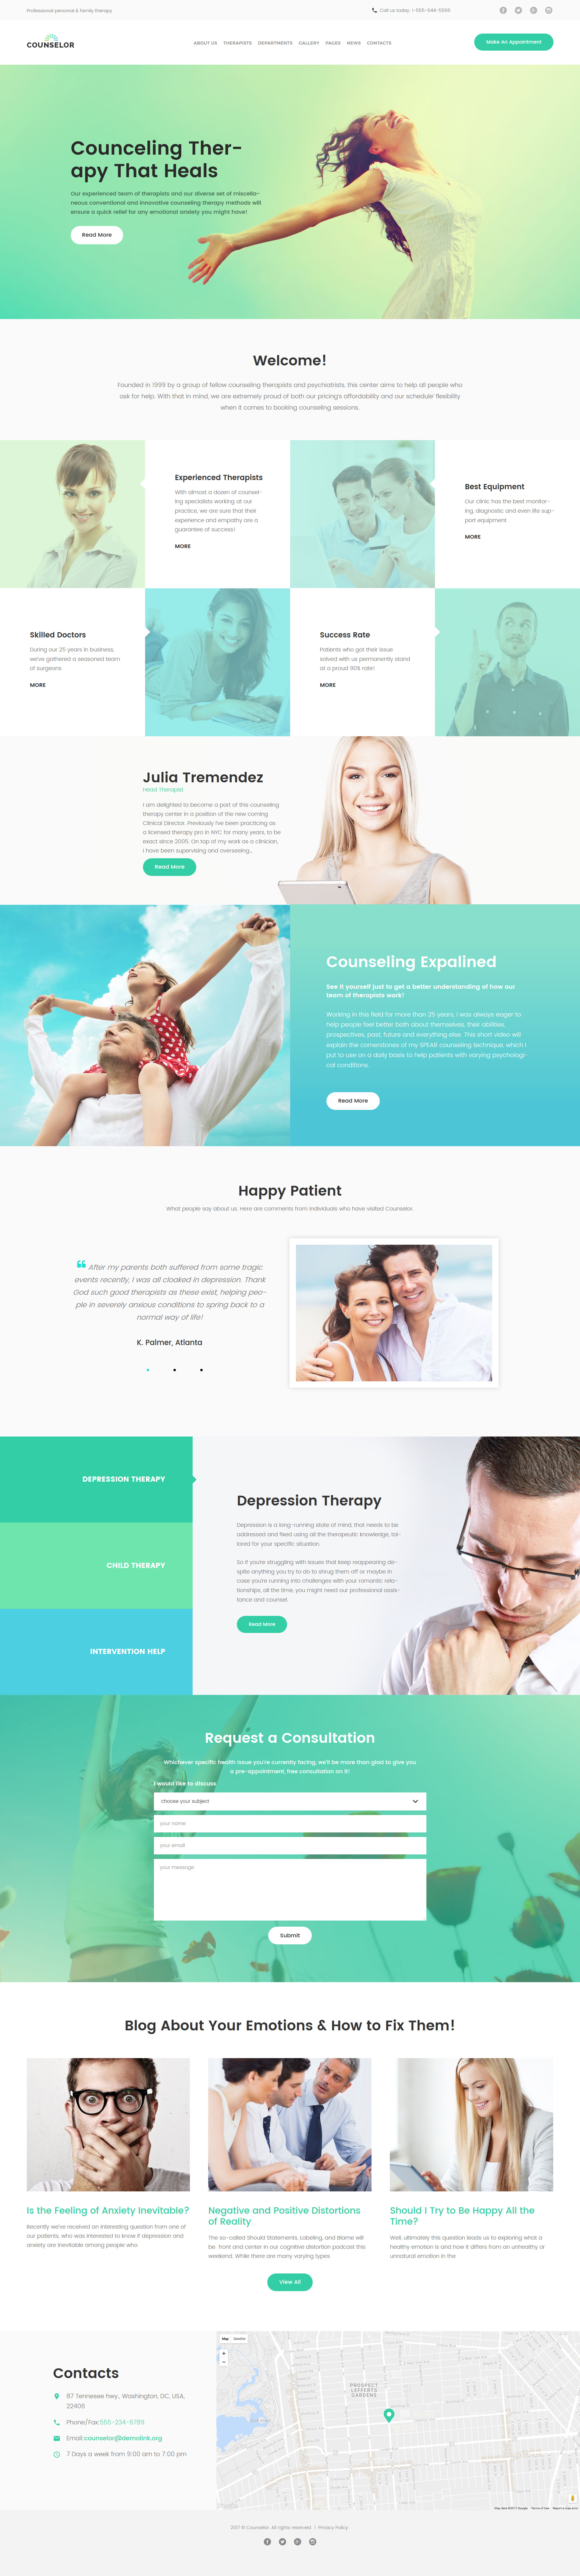 """Counselor - Counseling Therapy Center Responsive"" thème WordPress adaptatif #63388"